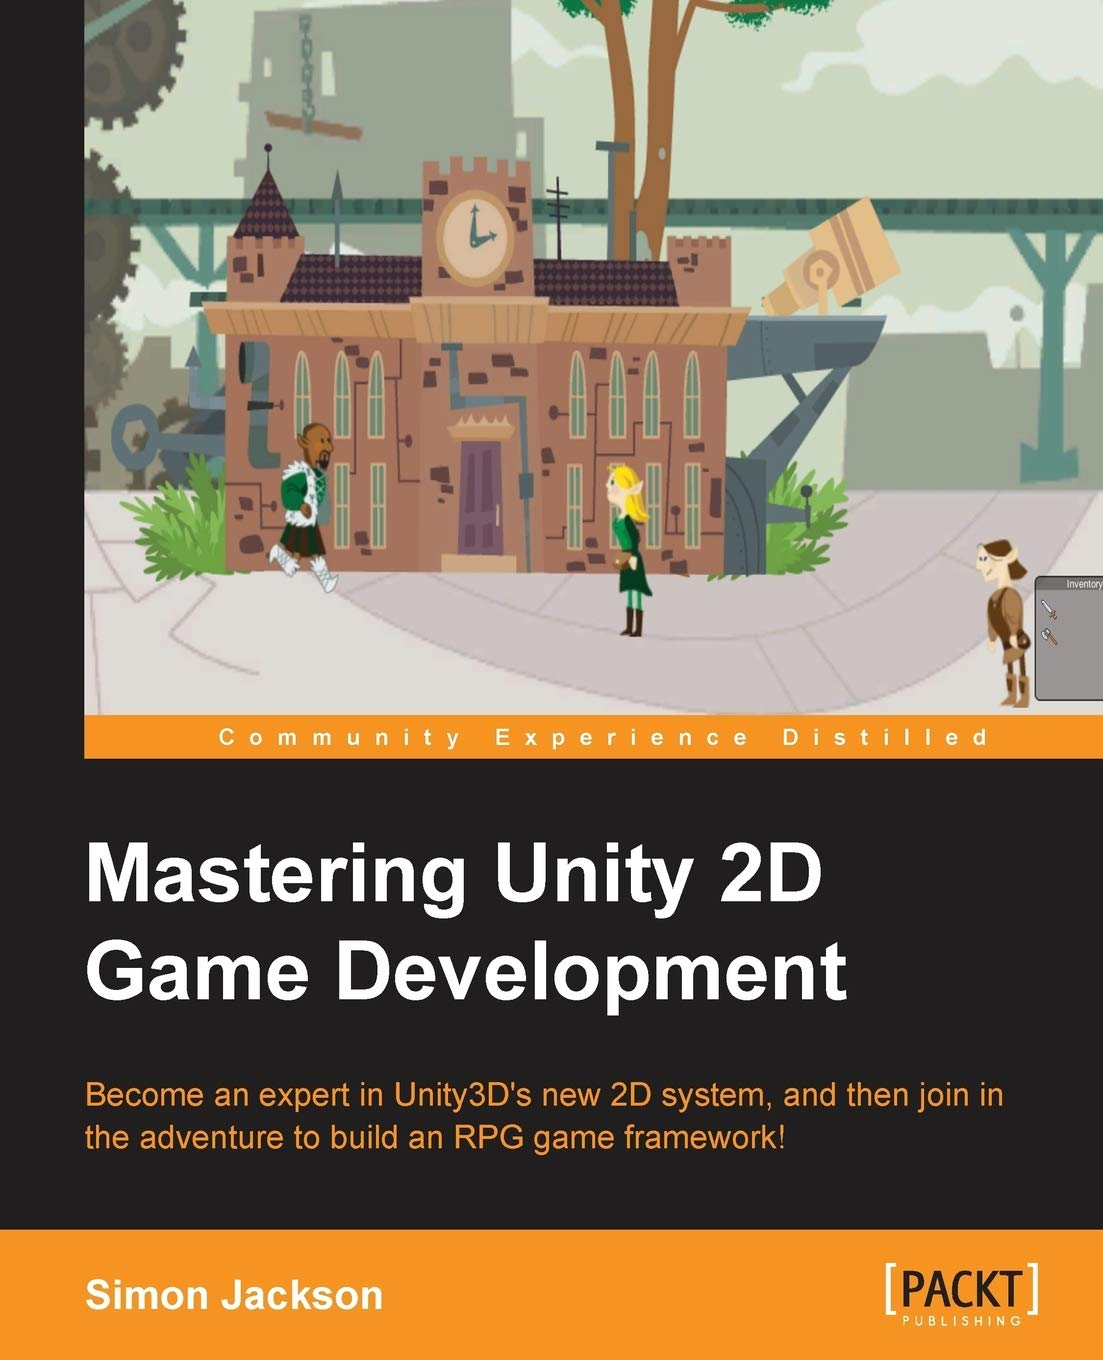 How To Make An Rpg Game In Unity